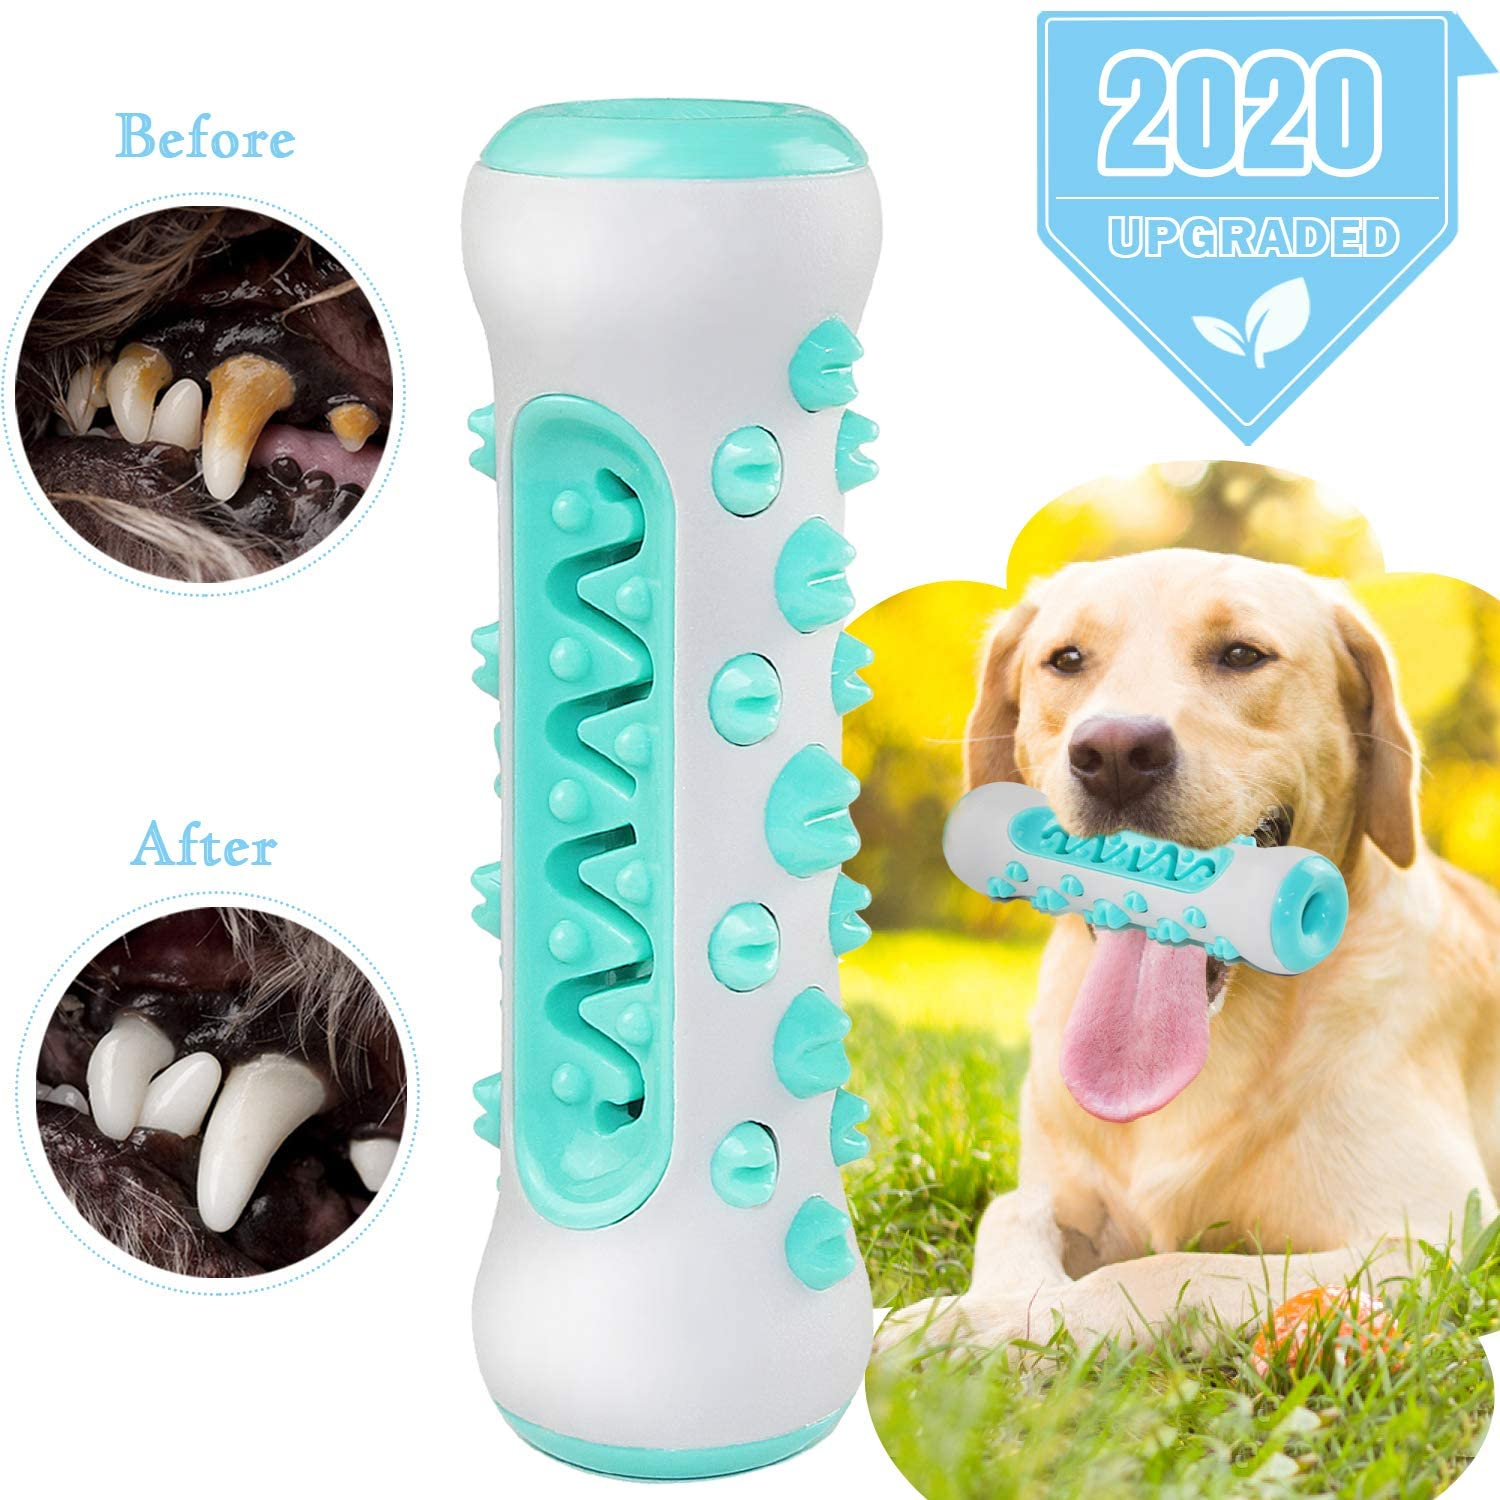 Dog Chew Toy for Aggressive Chewer, Upgrade Dog Brushing Stick for Dog Teeth Cleaning, Safe Soft Bite-Resistant Brushing Dental Care Teeth Cleaning Stick Toy for All Breed of Dogs (Fit 25-70 lbs)